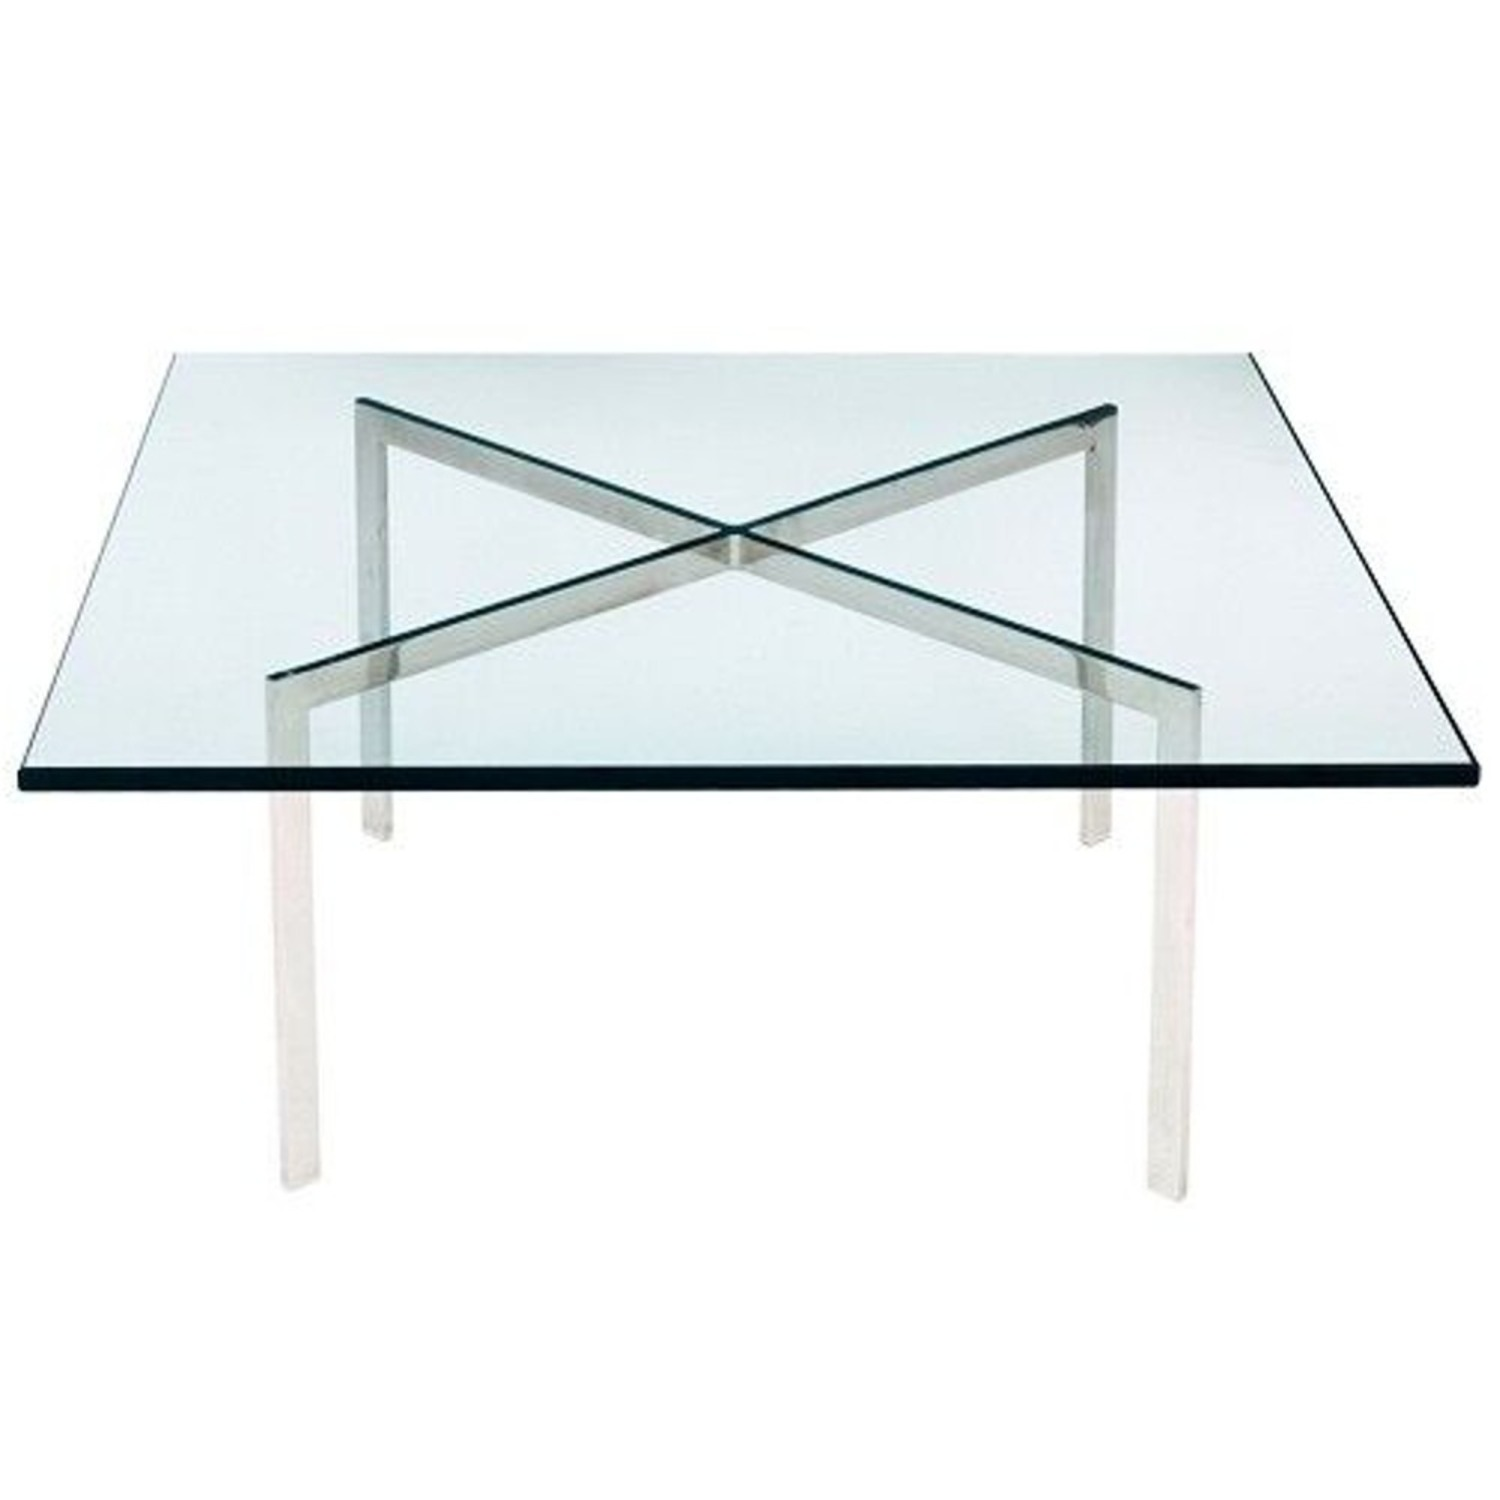 Coffee Table In Stainless Steel Frame & Glass Top - image-1